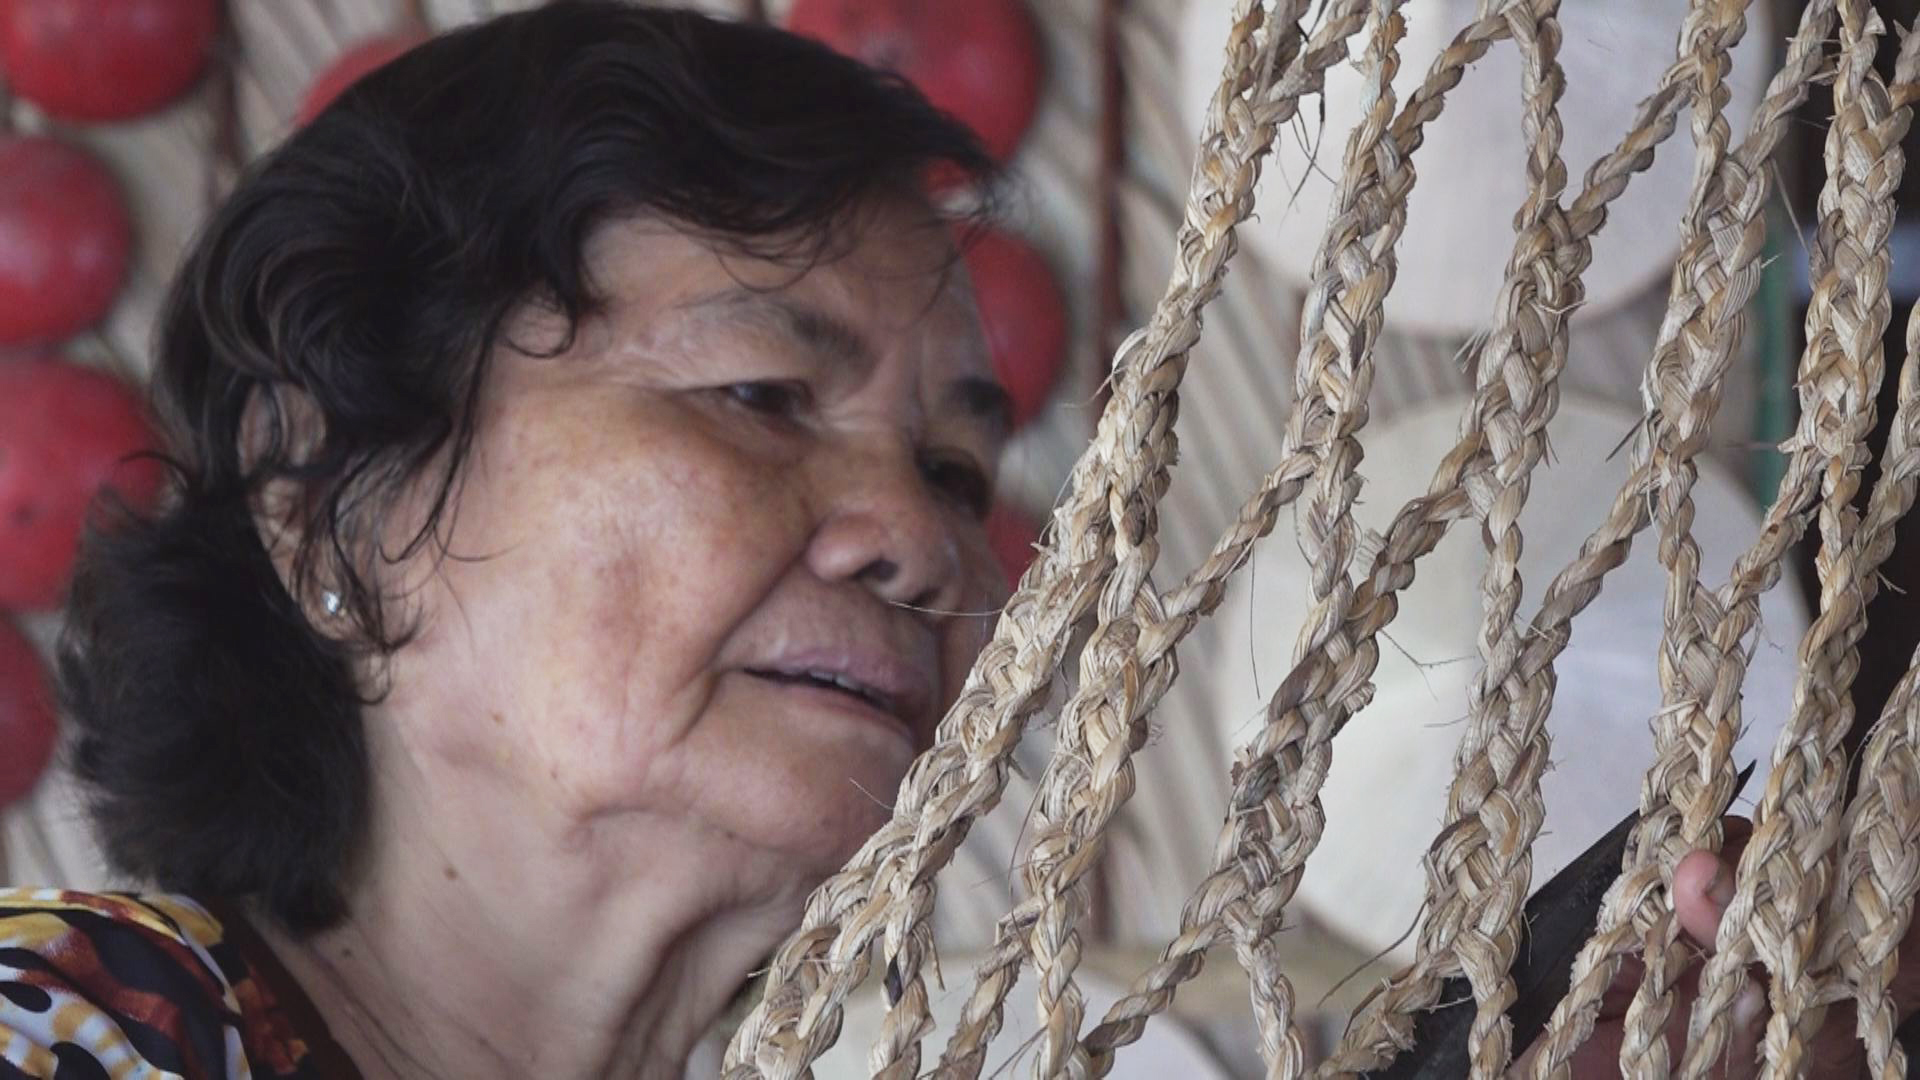 Woman spends 50 years fashioning hammocks from dried banana leaves in Vietnam